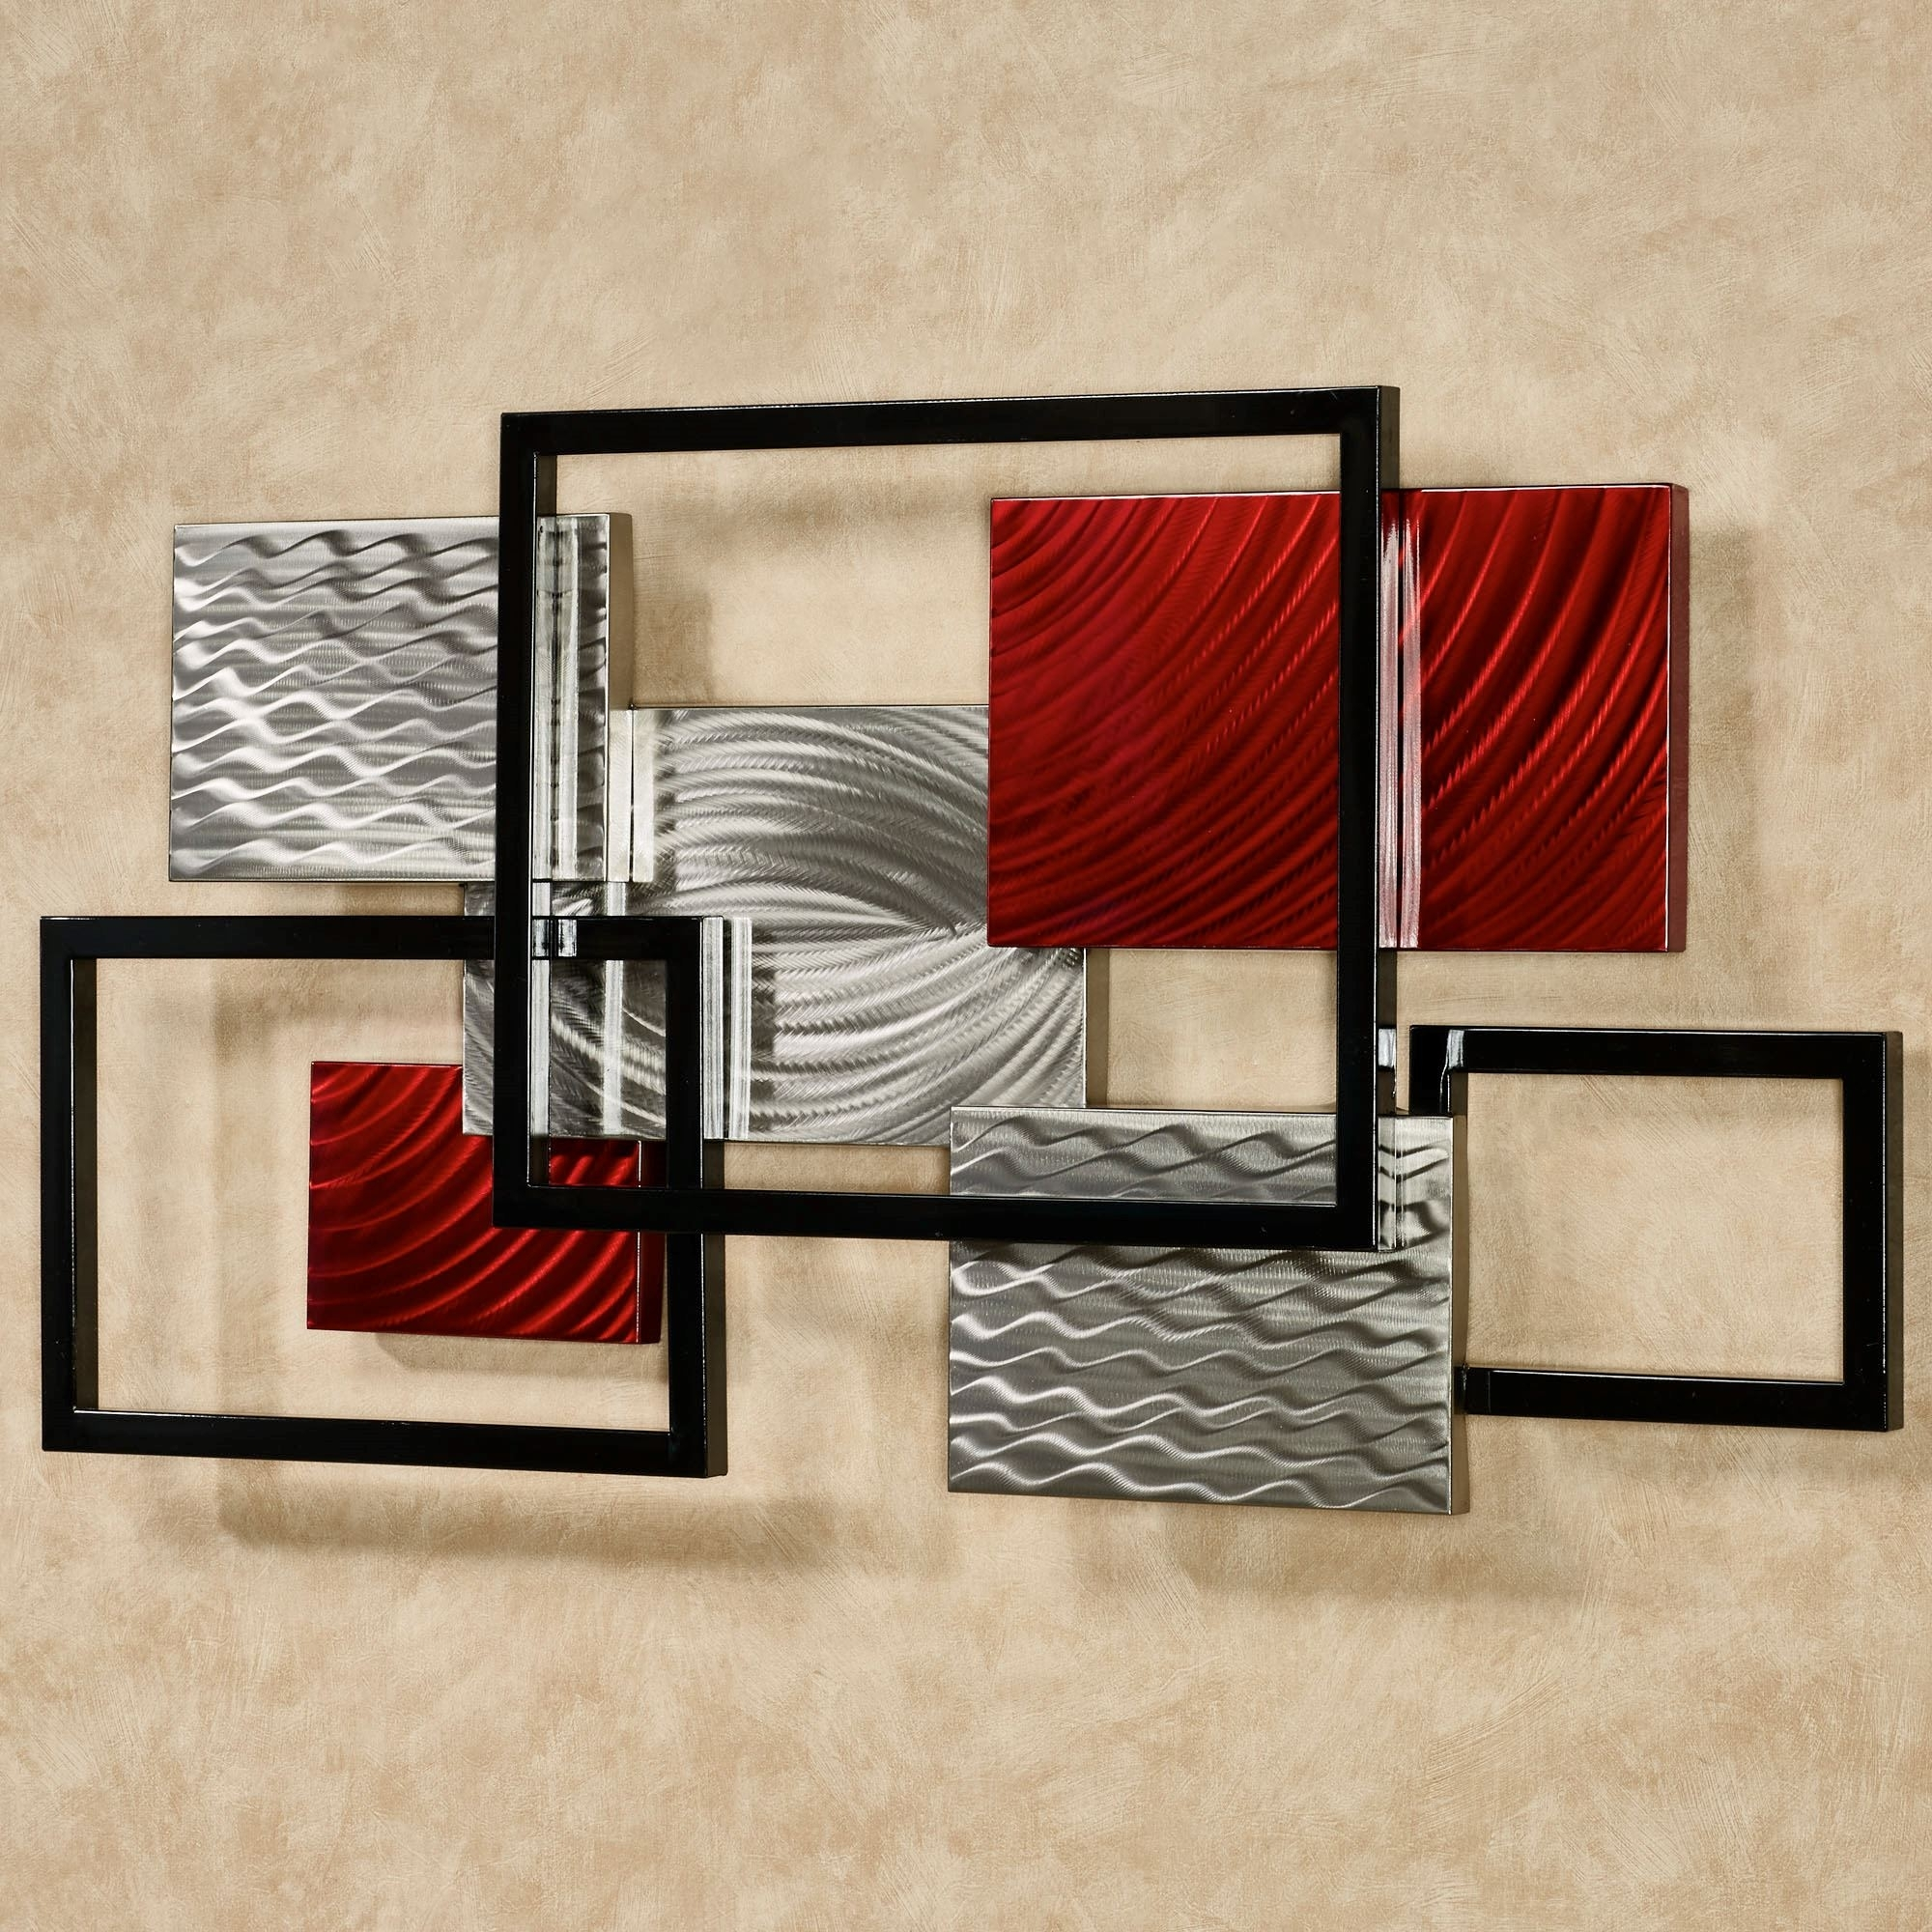 Framed Array Indoor Outdoor Abstract Metal Wall Sculpture Regarding Most Up To Date Abstract Iron Wall Art (View 6 of 20)